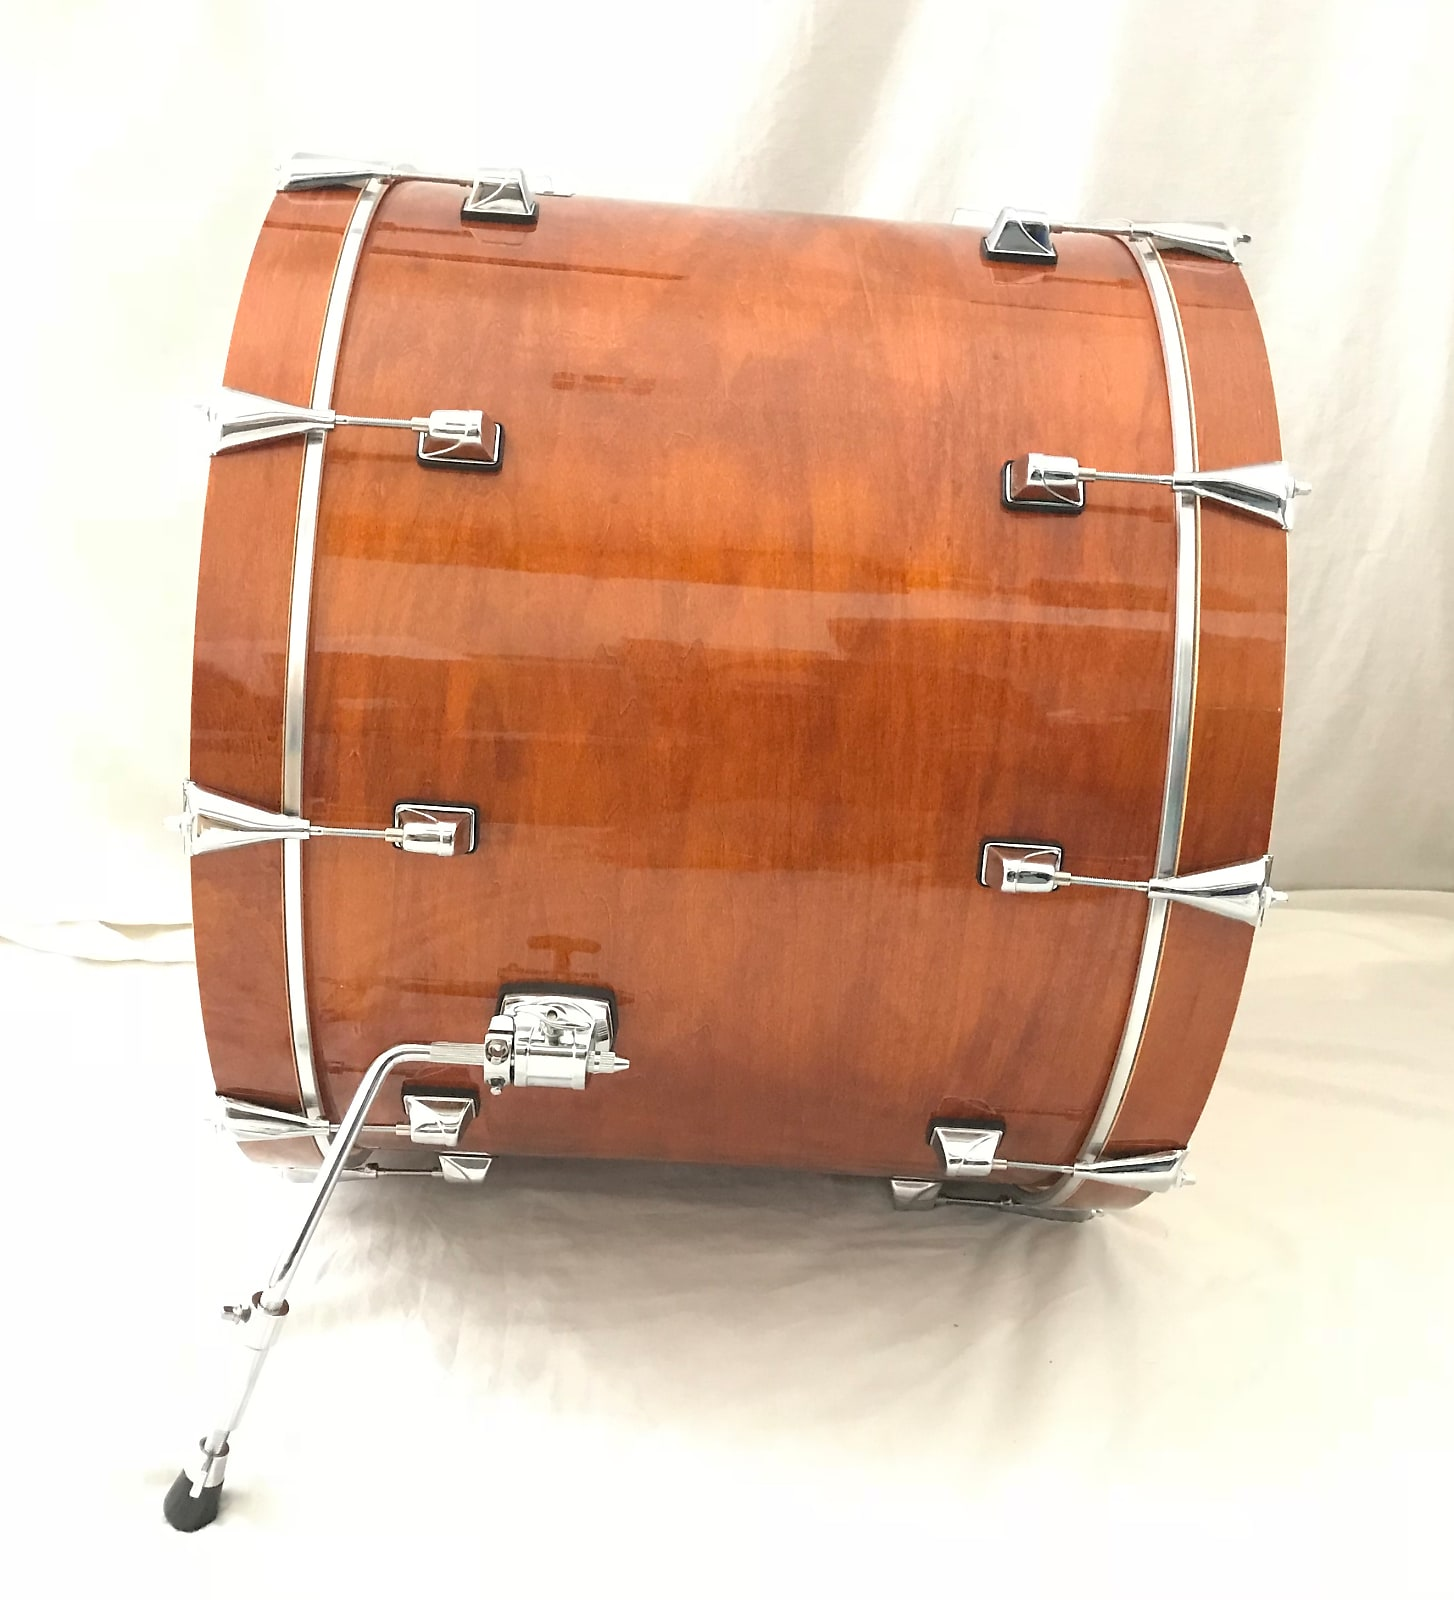 New Taye Drums TourPro 24x18 Naked Bass Drum In Beautiful